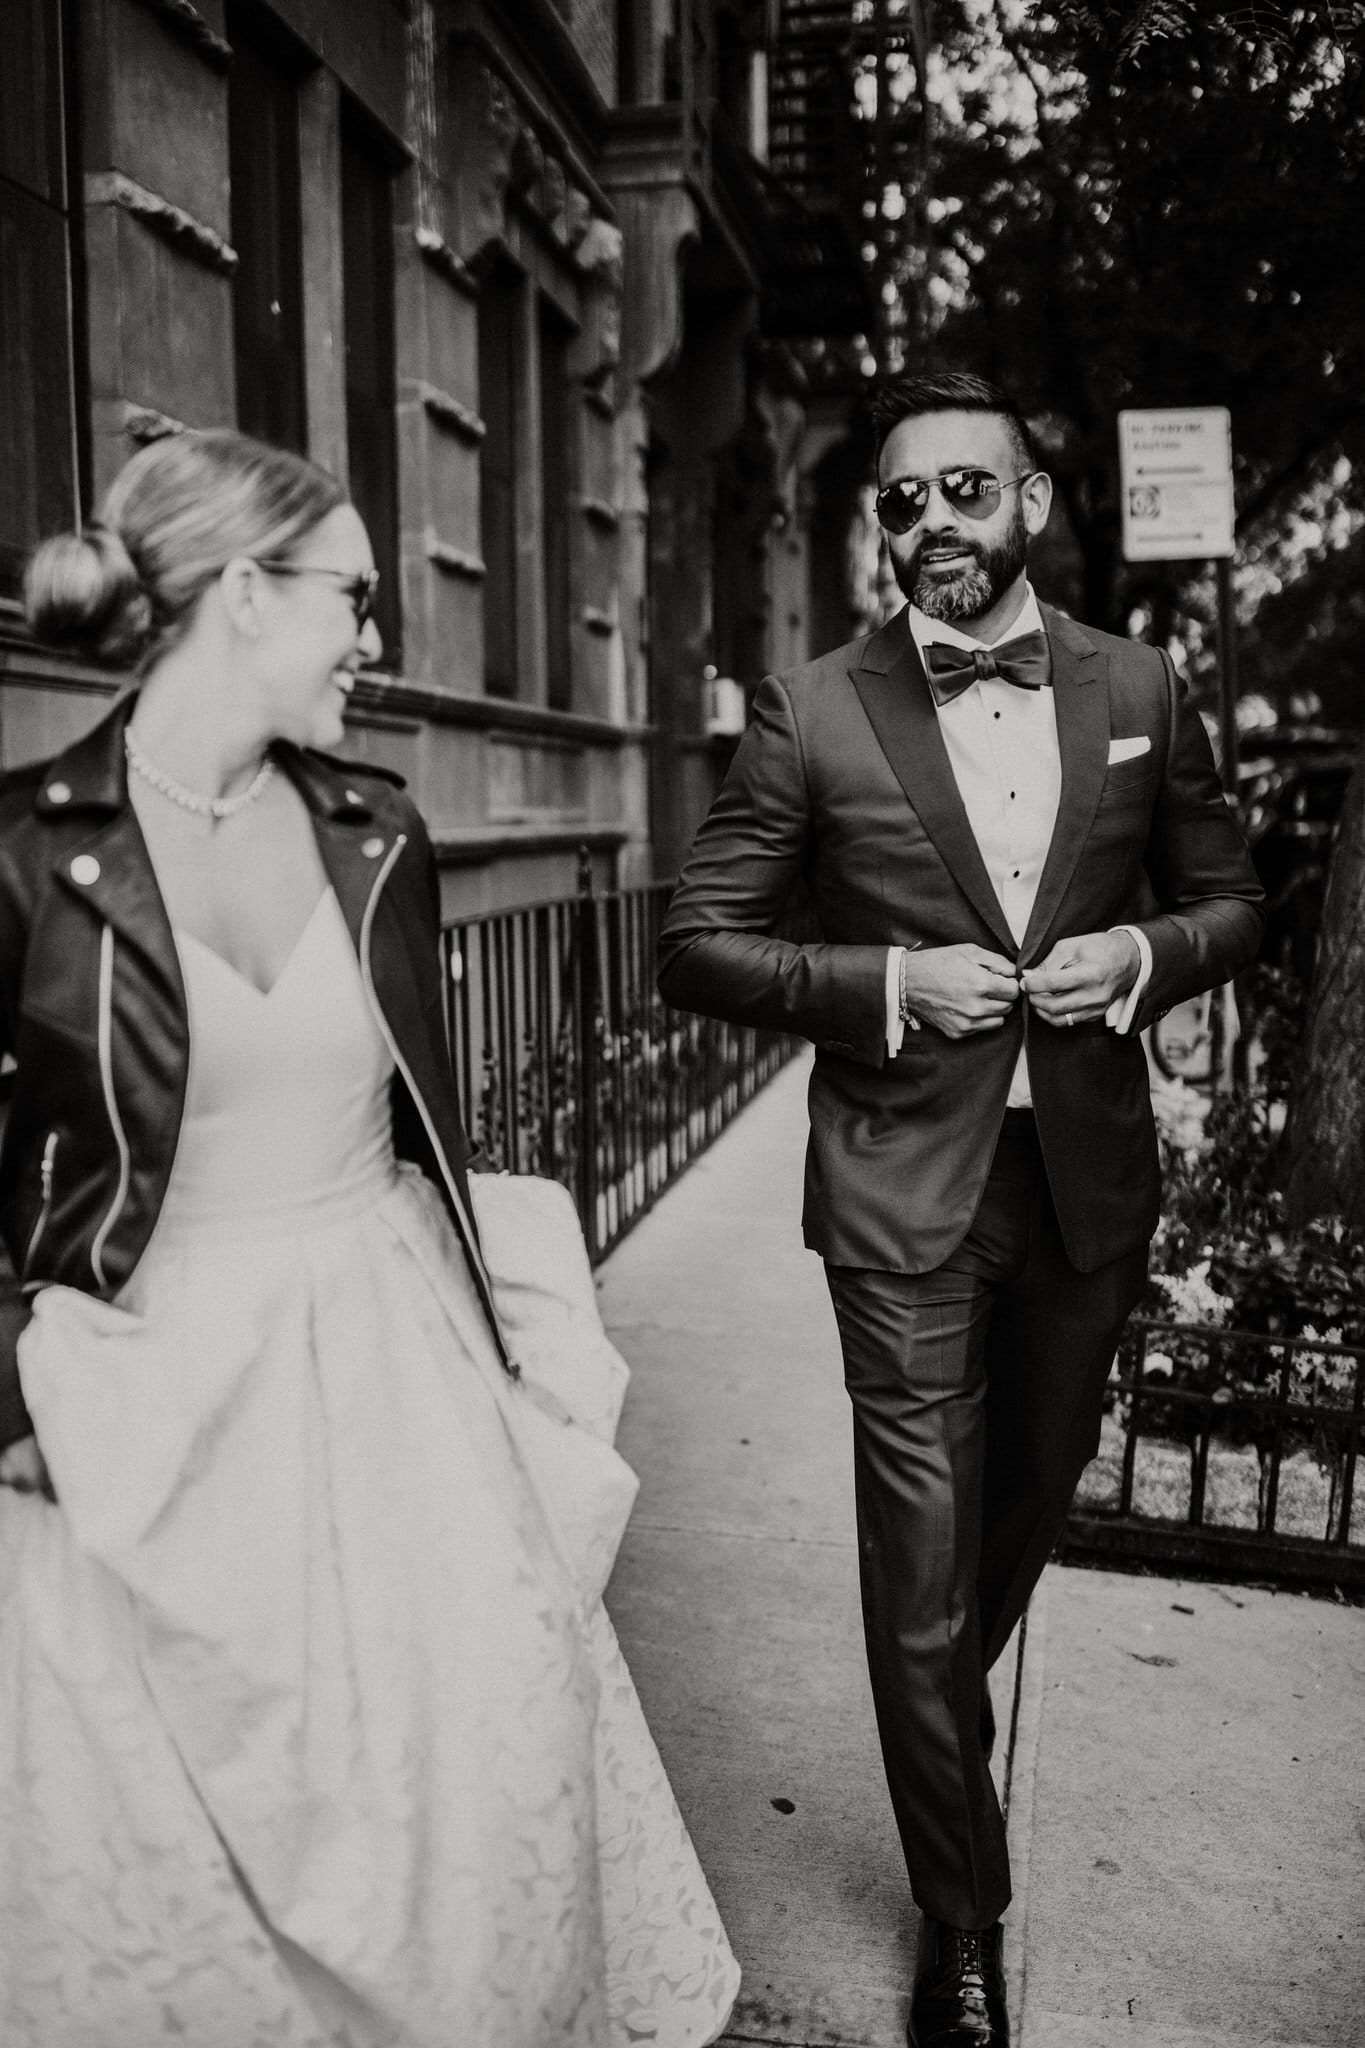 Black and white portrait of the groom in sunglasses adjusting his jacket as they begin their walk through the streets of New York. Wedding Photographer Brent Calis.